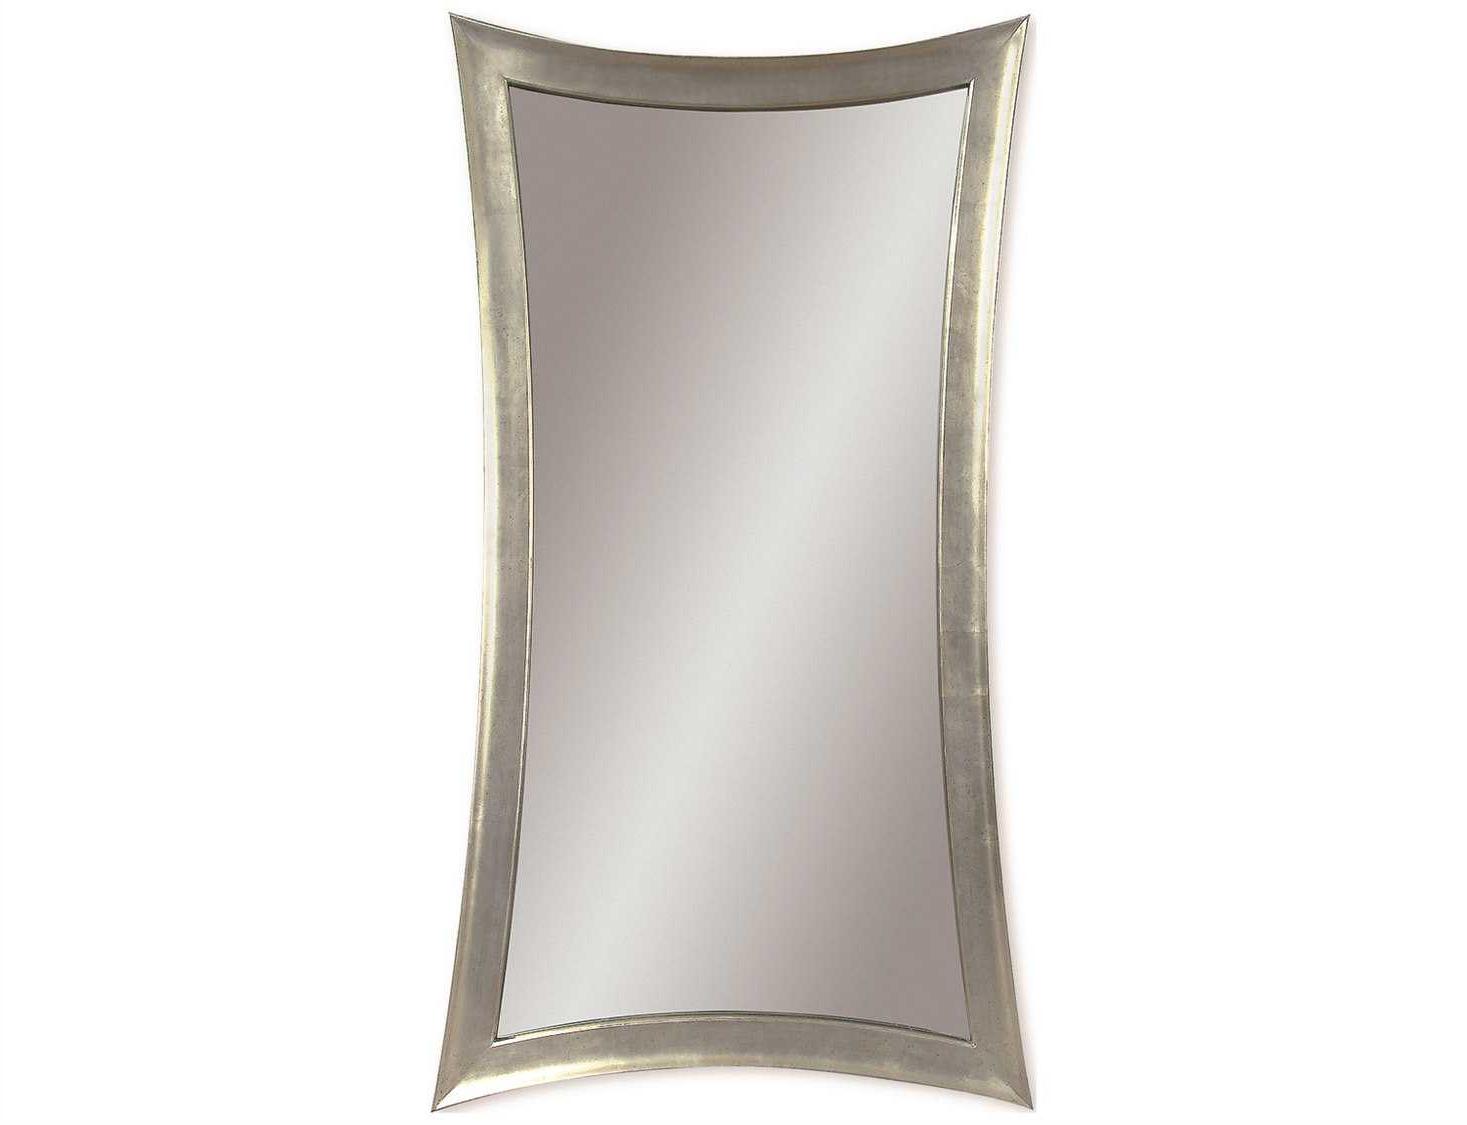 Fashionable Bassett Wall Mirrors For Bassett Mirror Thoroughly Modern 36 X 48 Silver Leaf Hour Glass Wall Mirror (View 14 of 20)